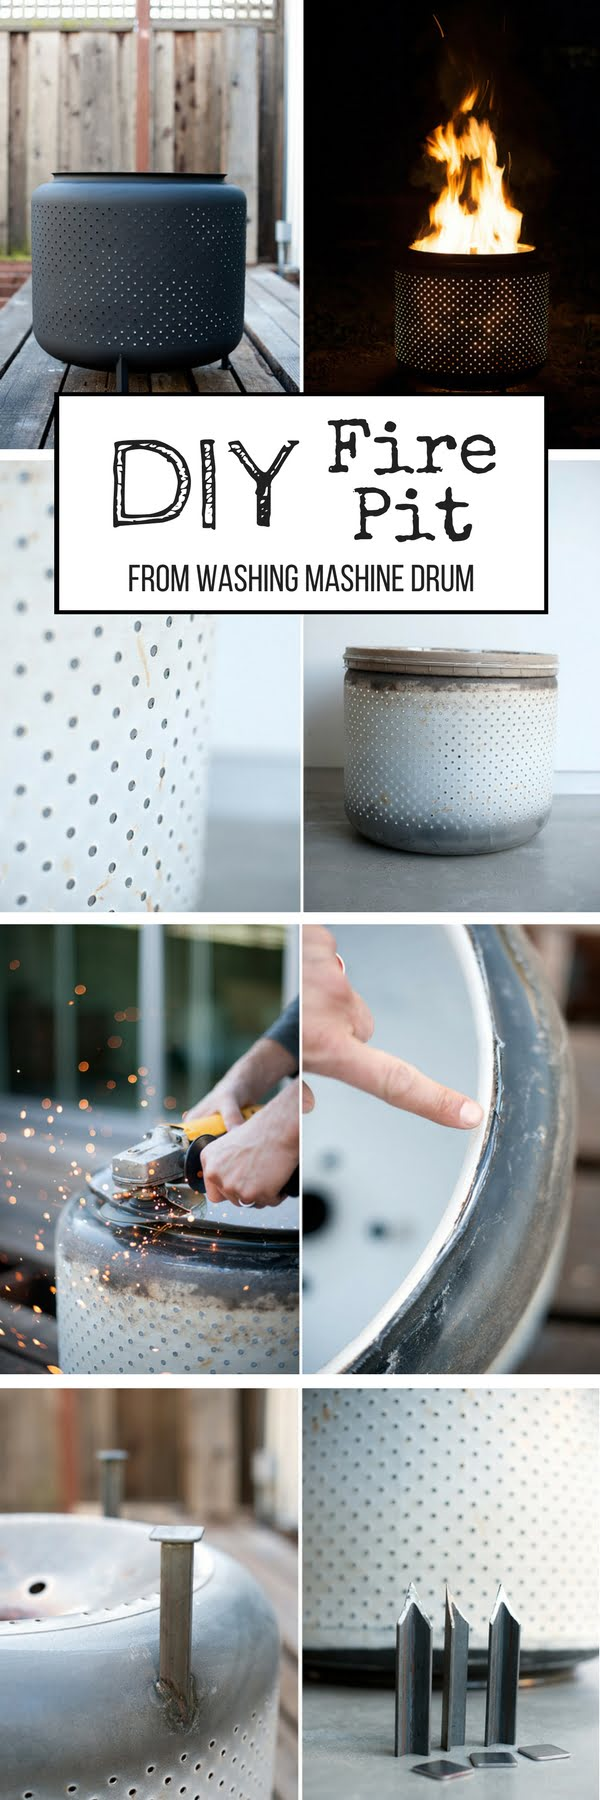 Check out the tutorial on how to make a DIY repurposed washing machine drum fire pit